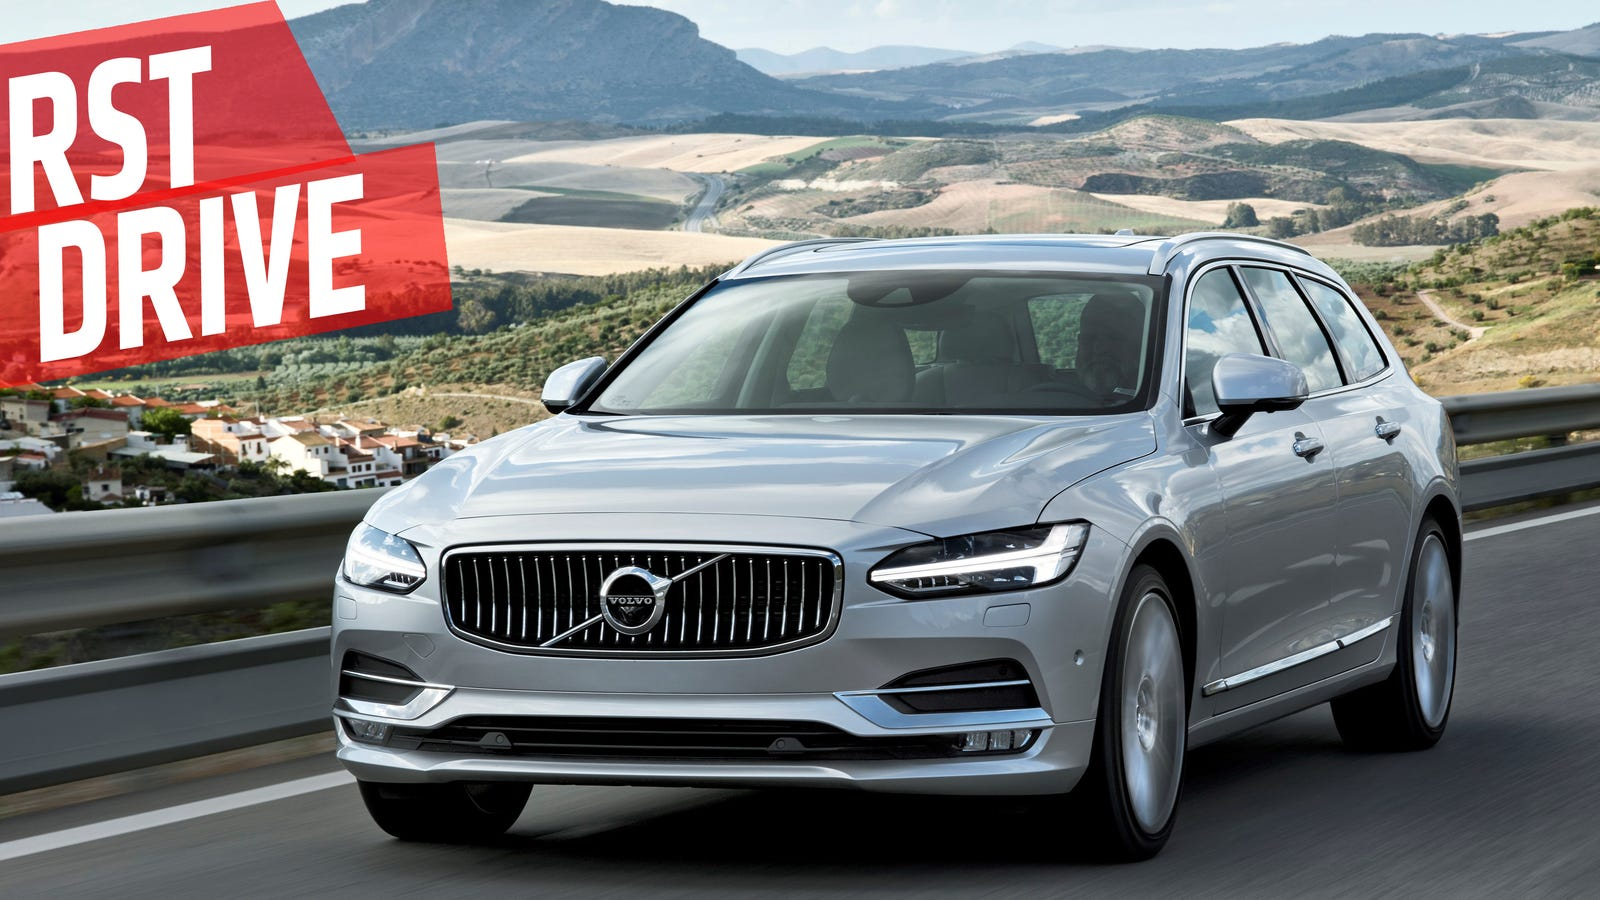 The 2017 Volvo S90 And V90 Are Why You Should Buy Swedish Instead Of German